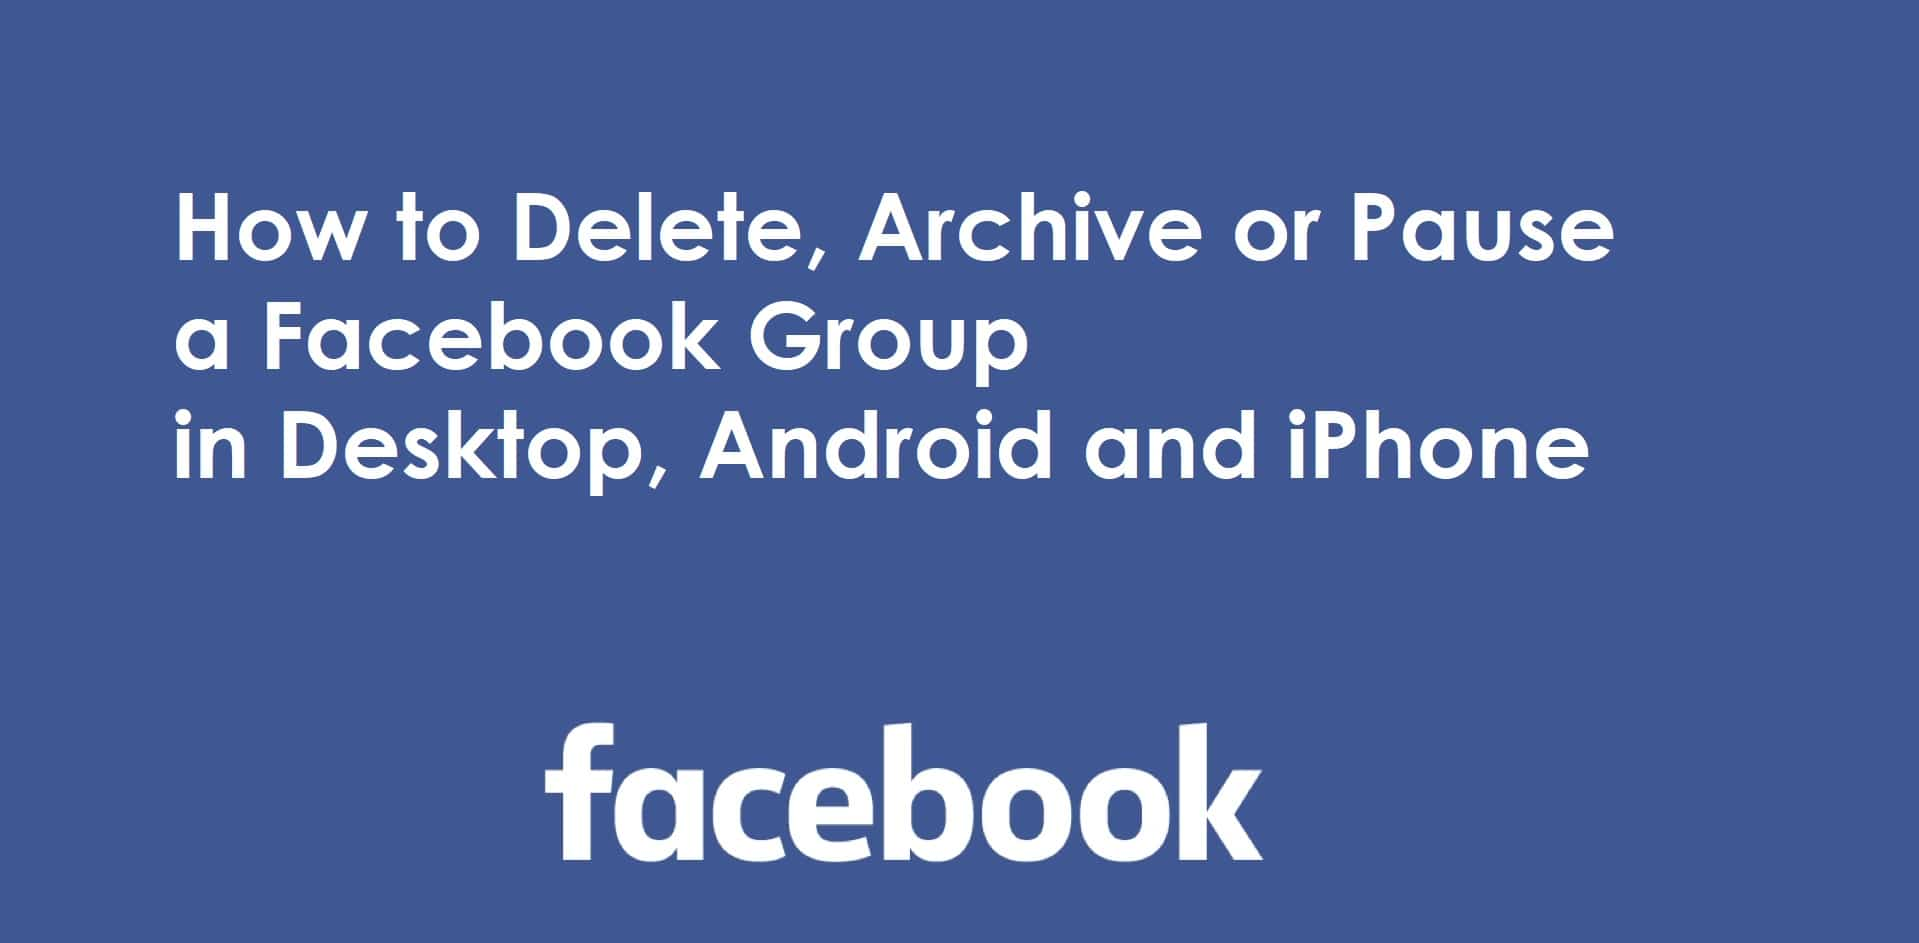 How to Delete, Archive or Pause a Facebook Group in Desktop, Android and iPhone